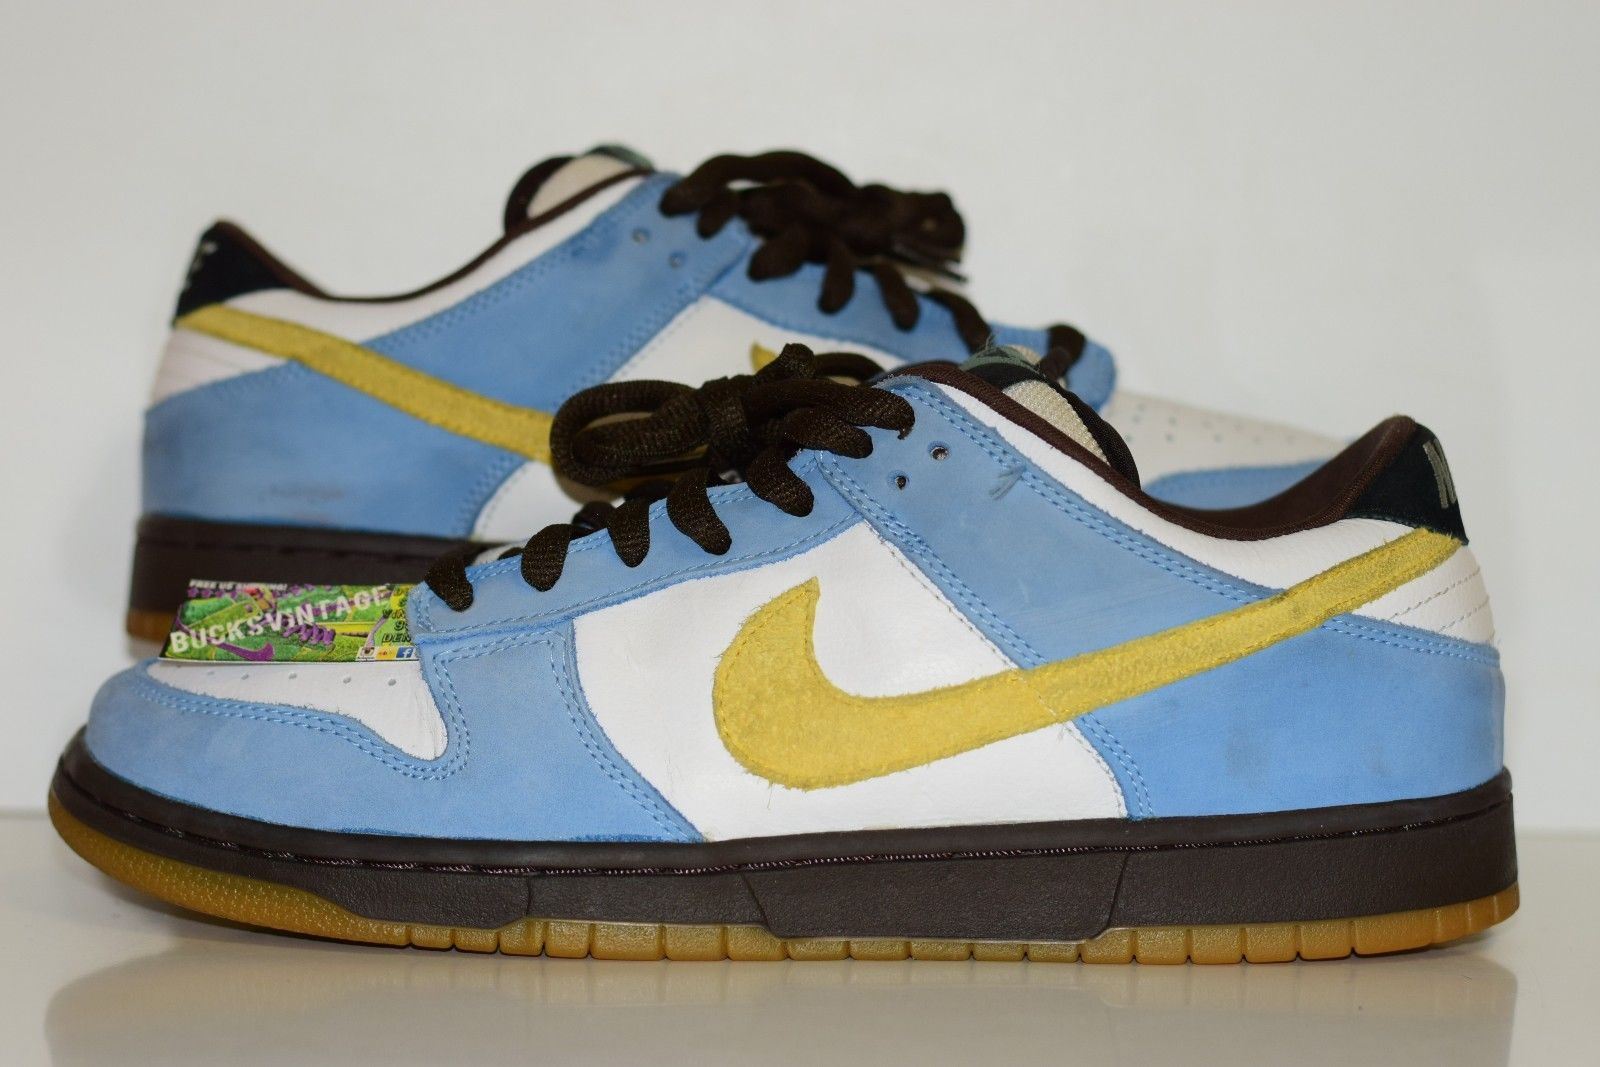 timeless design fabc6 37164 Size 11 | 2004 Nike Dunk Low Pro SB HOMER Authentic 304292-173 from  BucksVintage